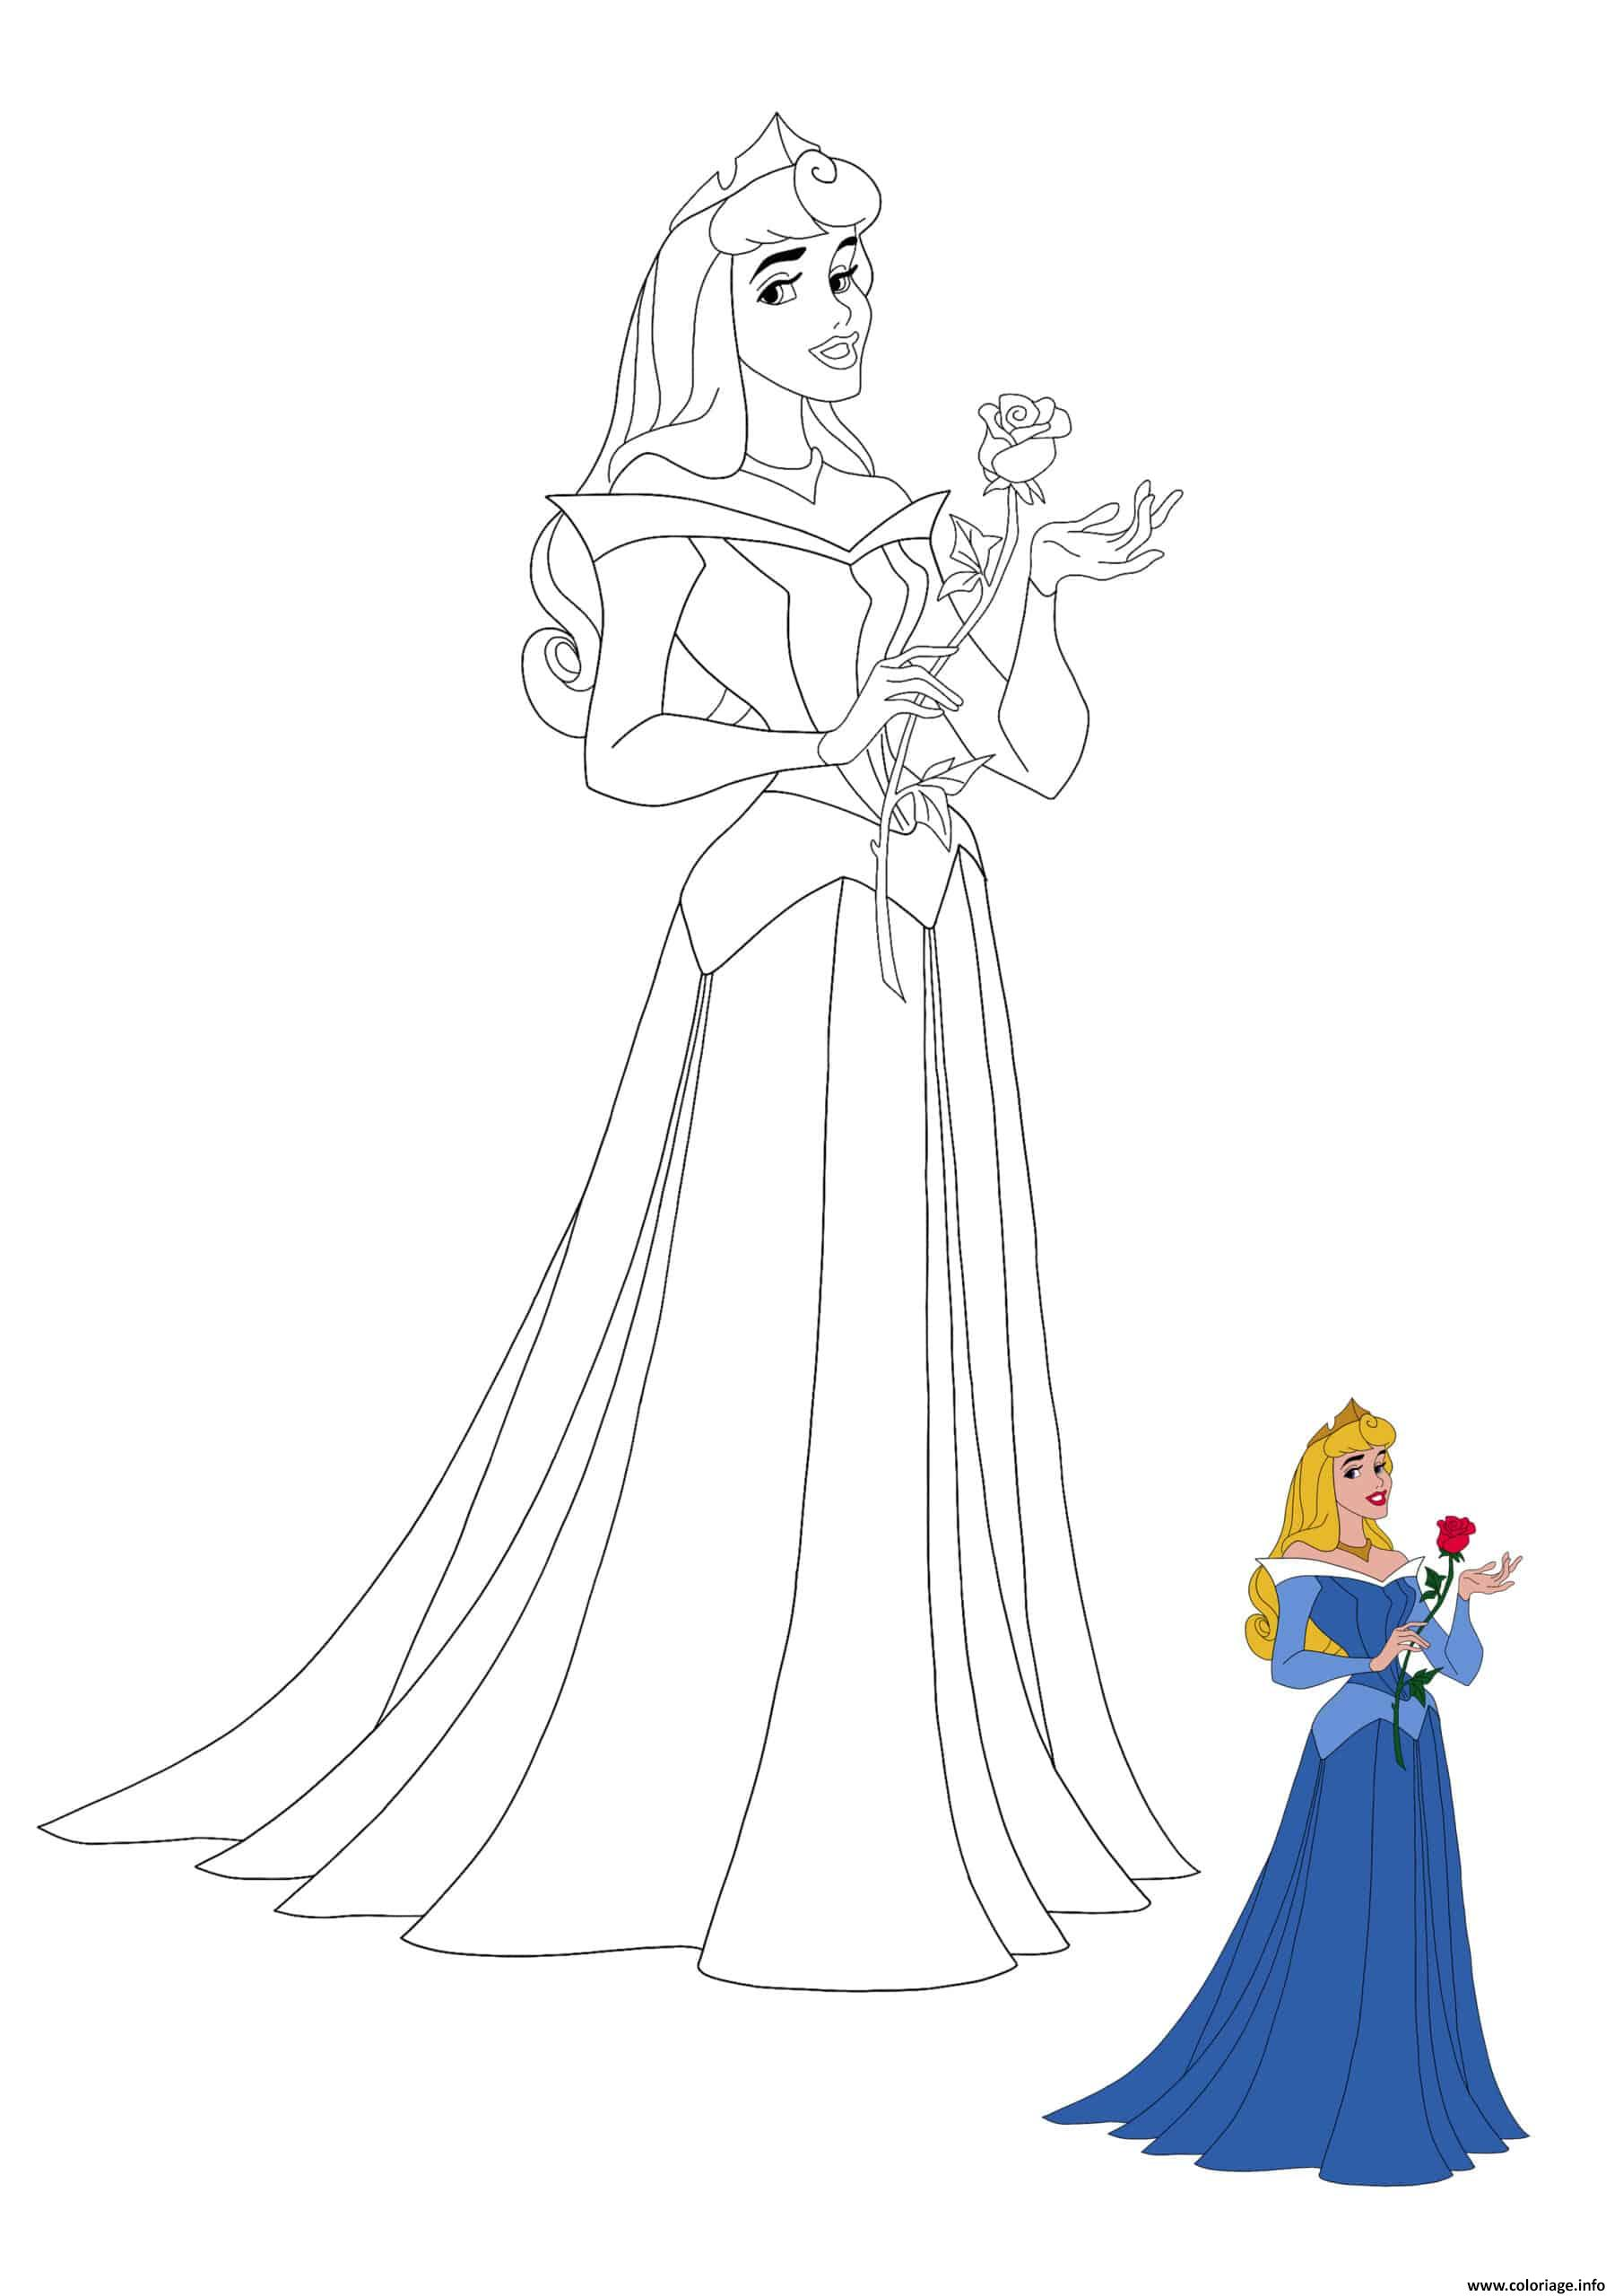 Coloriage Princesse Aurora From Sleeping Beauty Dessin à Imprimer